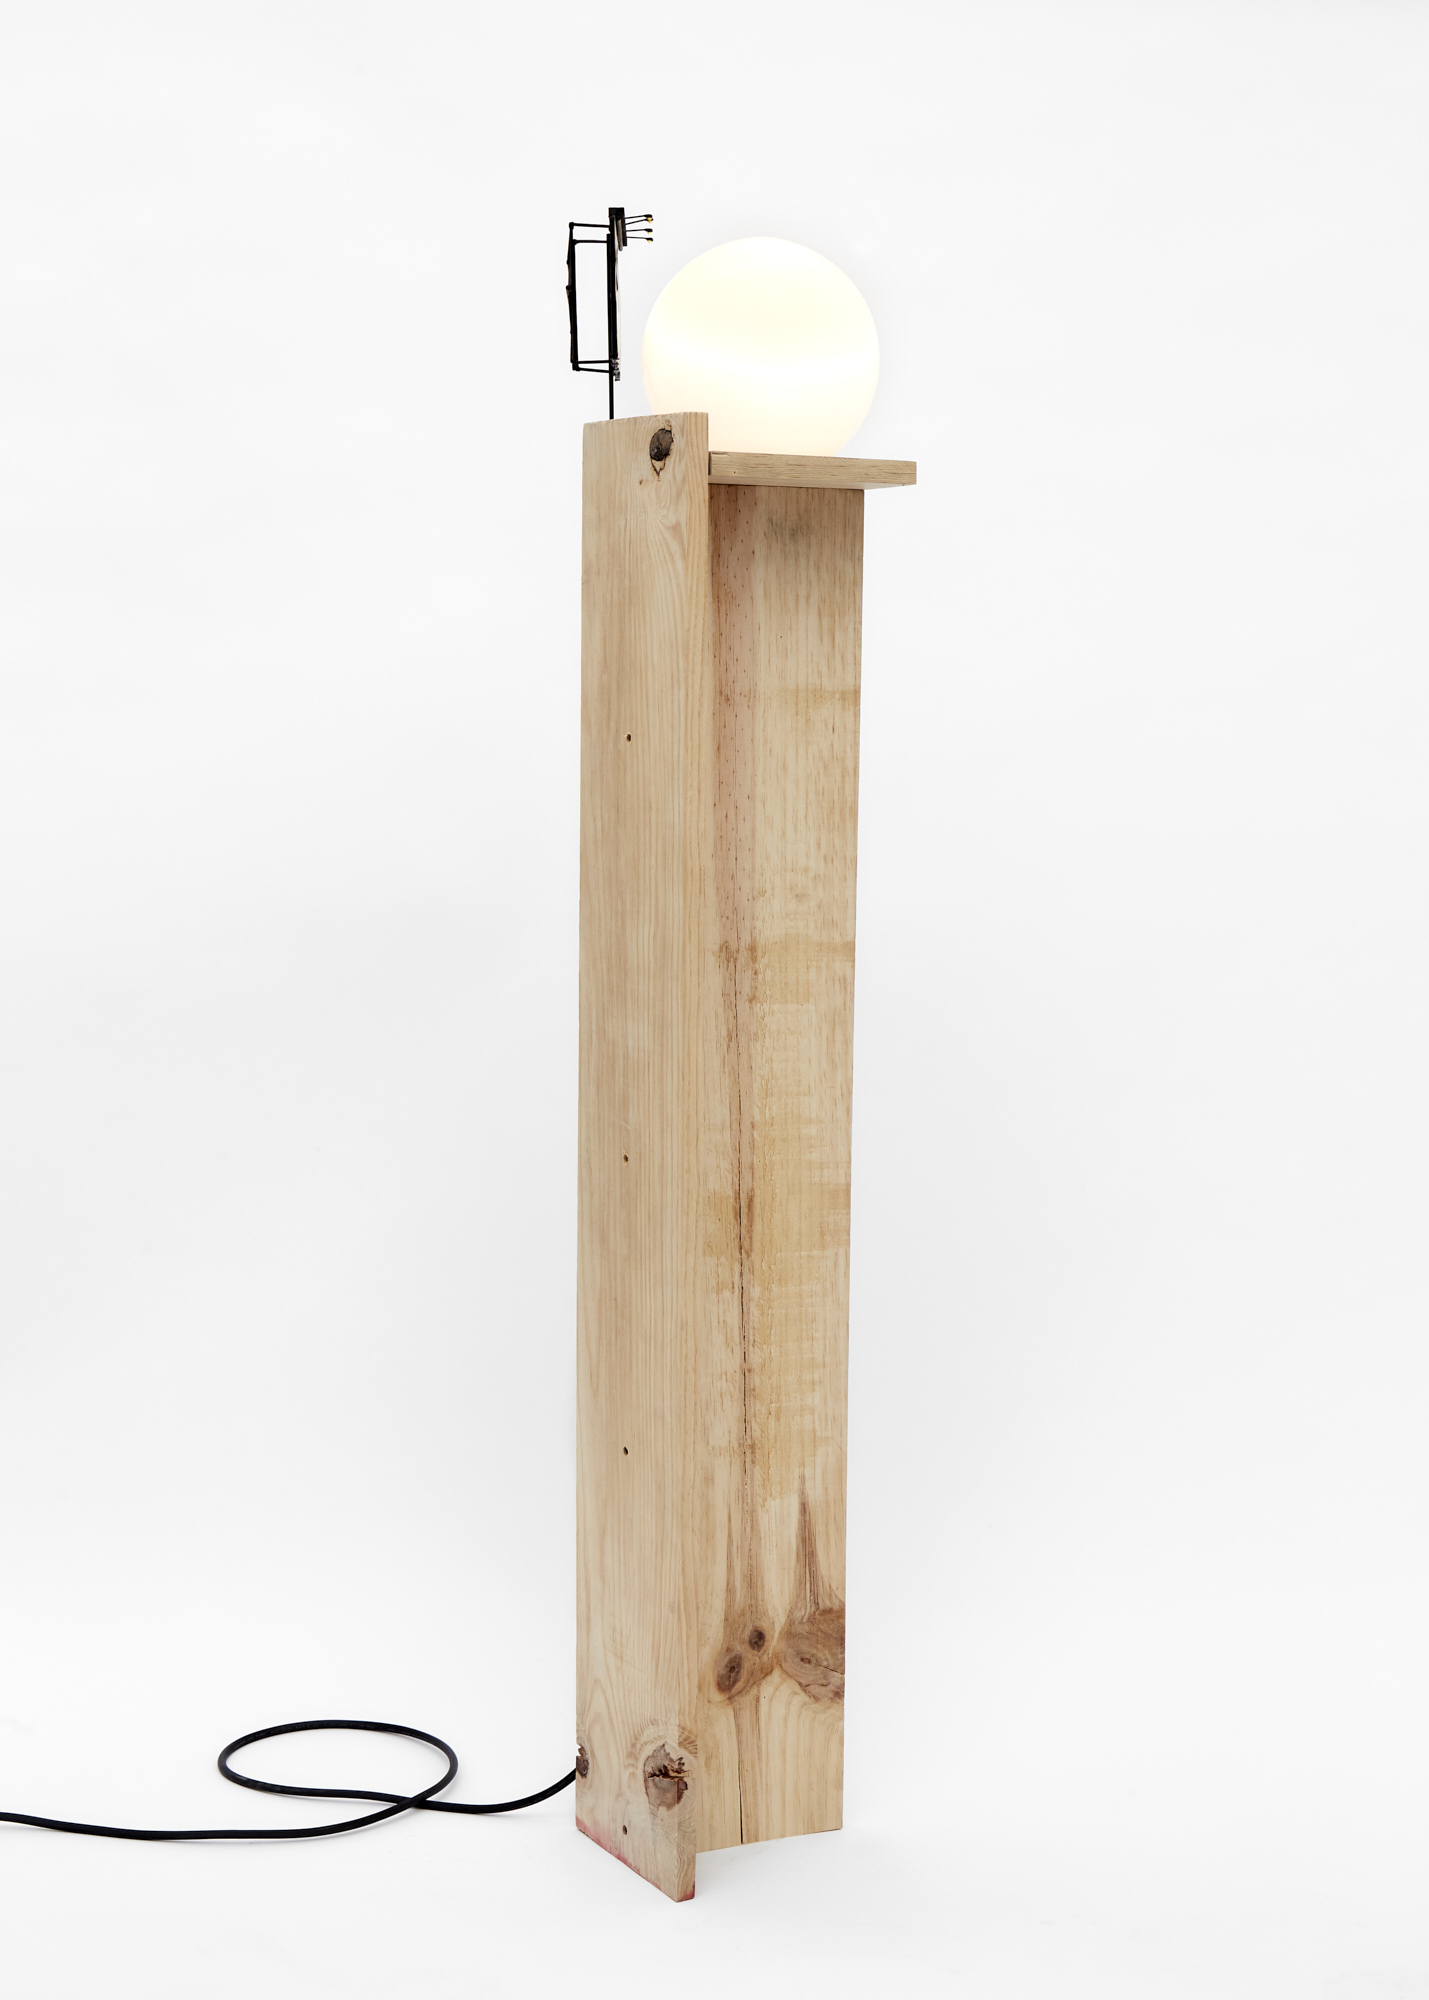 Charlie Godet Thomas, Rooftop Poem (Harvest), 2020. Wood, cut section of paper palette, glass, electrical light fitting, bulb, wooden dowels, plastic, screws, glue, acrylic paint. 139 x 21 x 19 cm.